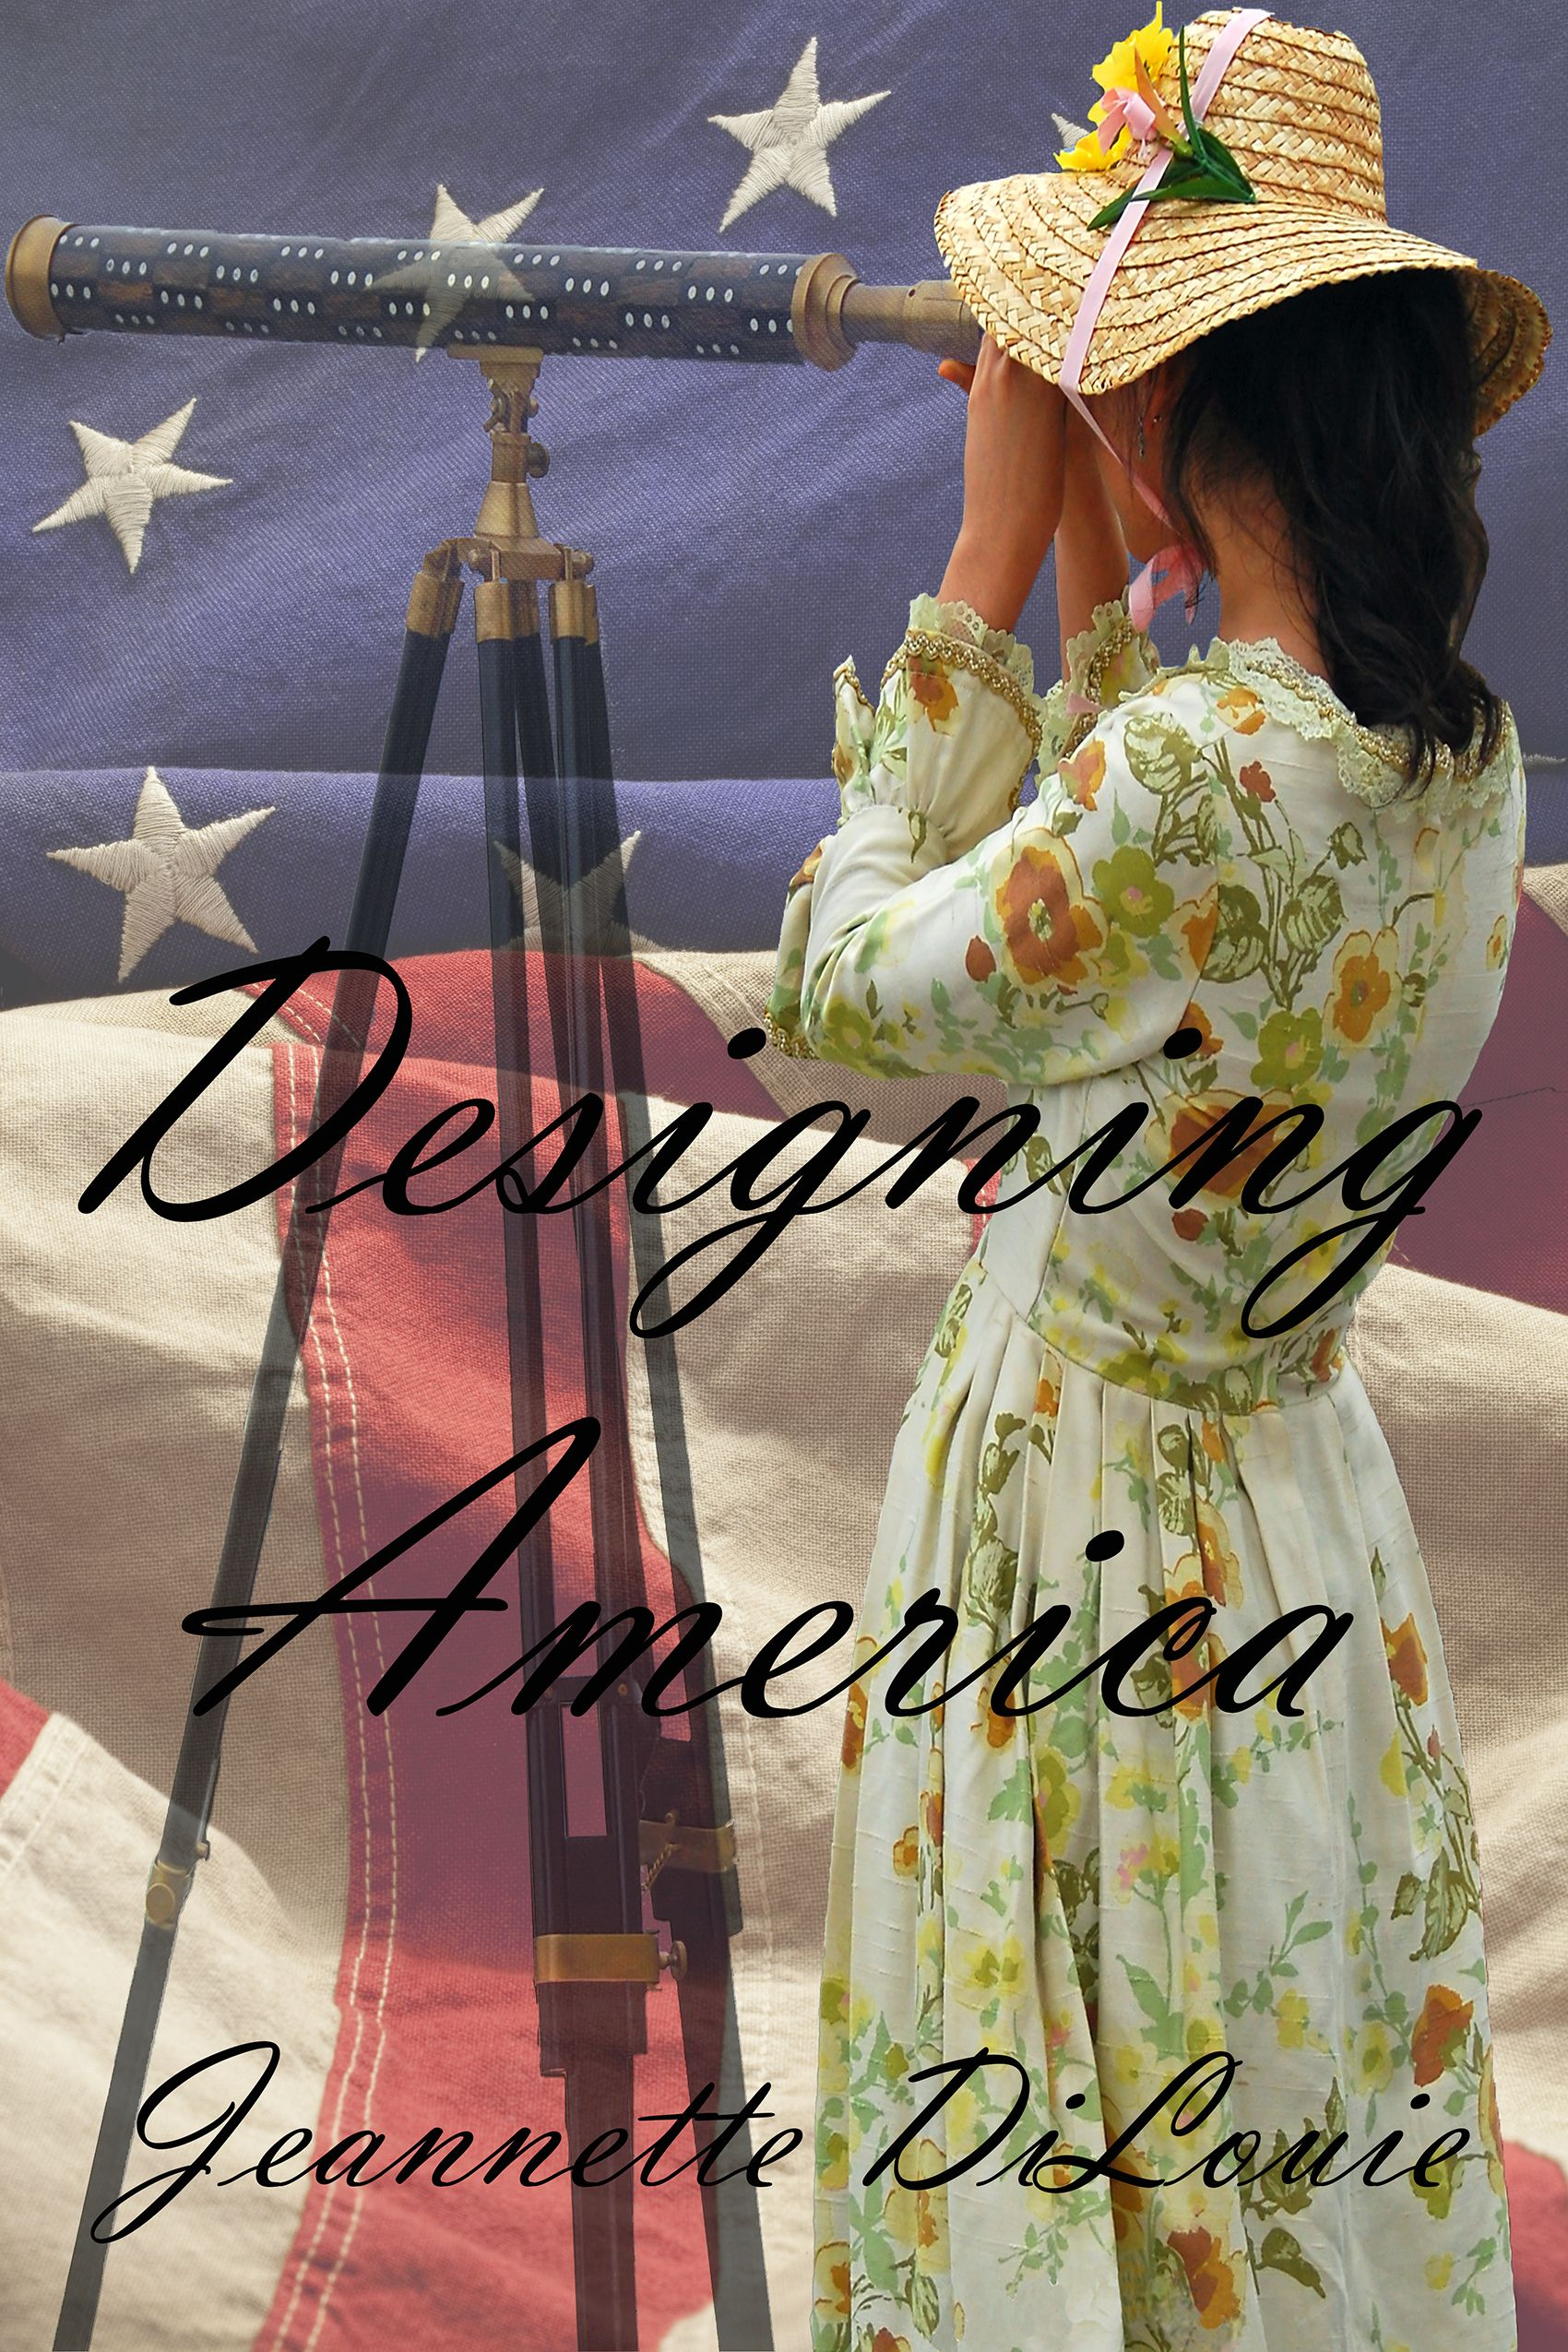 The working front cover of Designing America, out this spring!